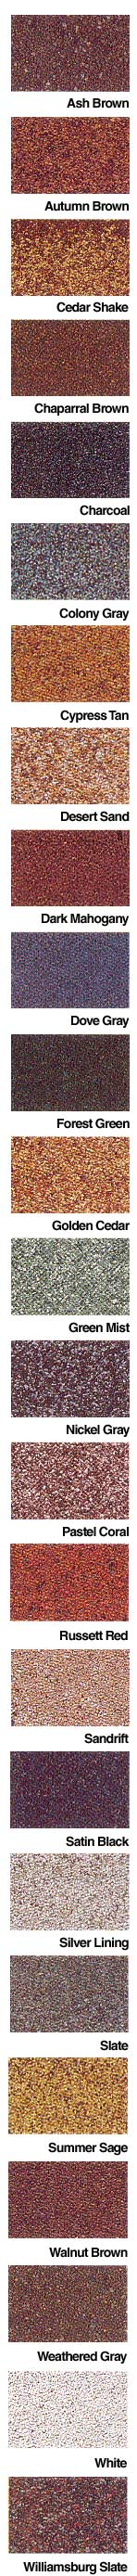 Sentinel Gaf Shingle Colors Samples Swatches And